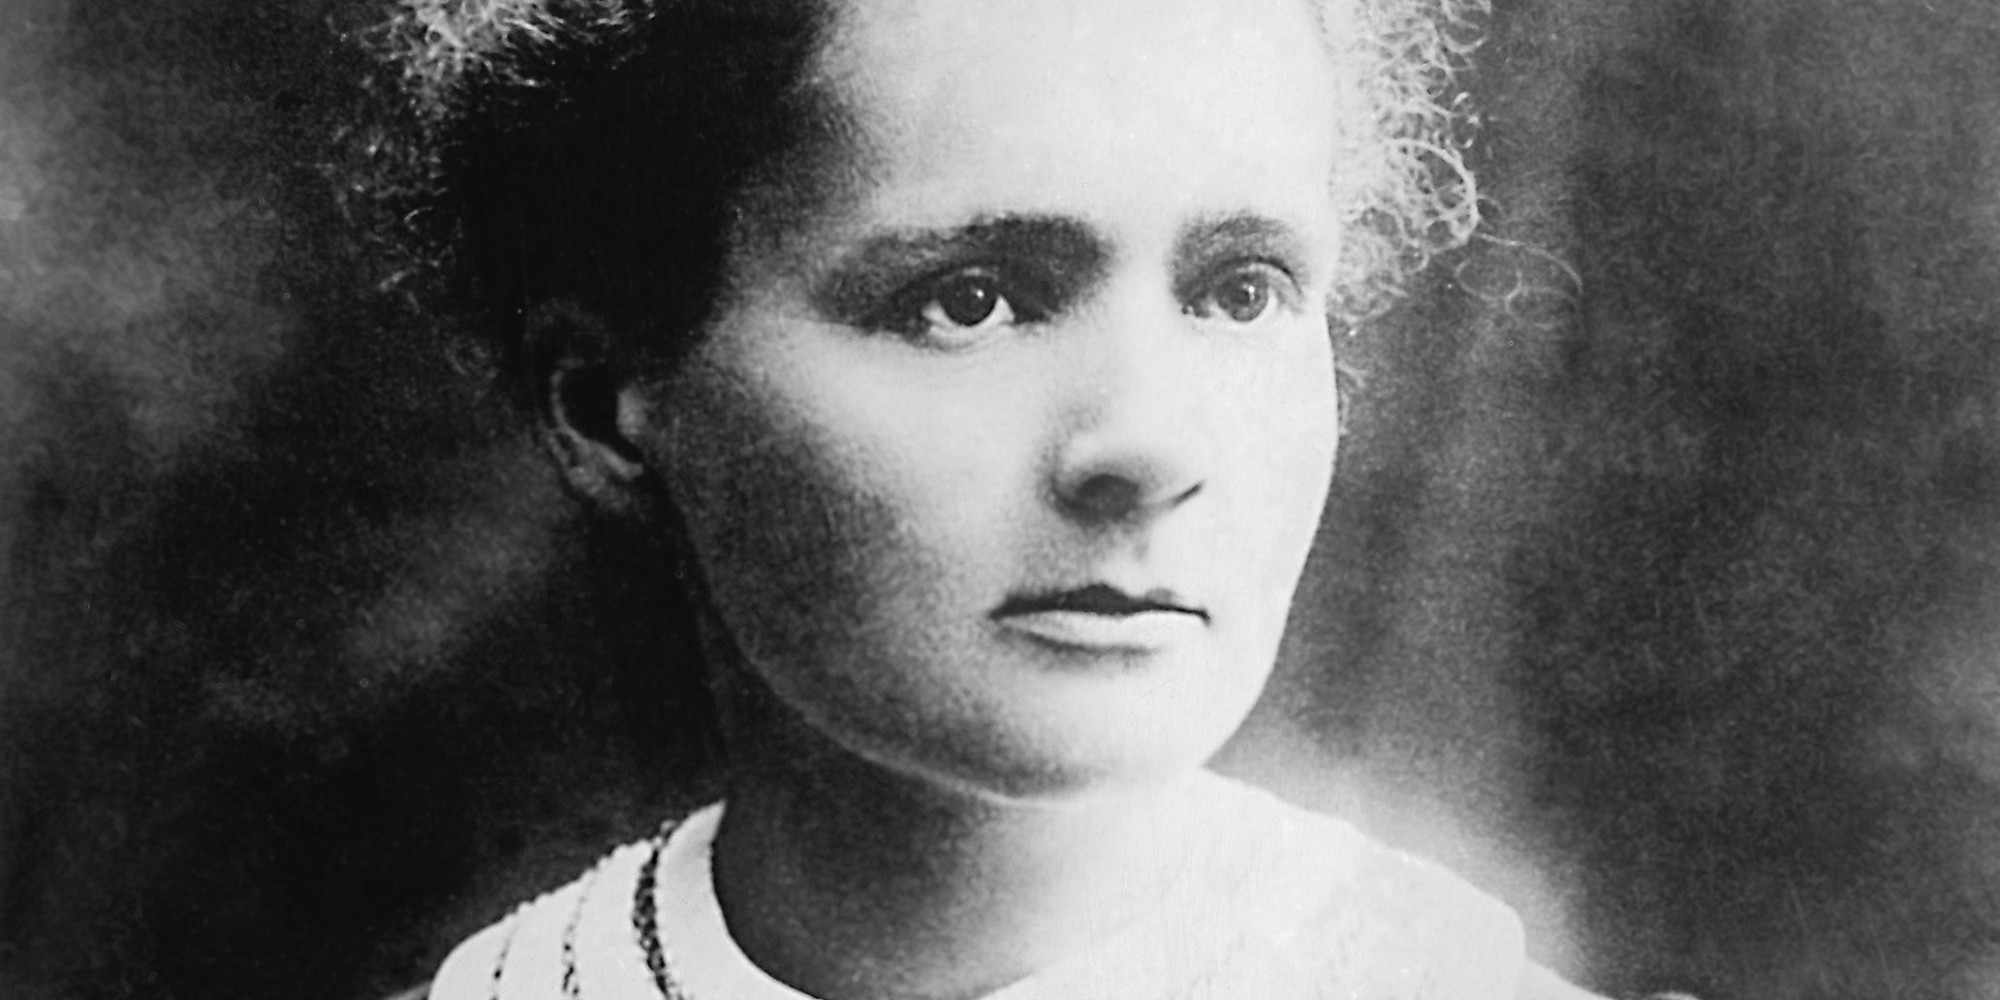 Marie Curie Sklodowska (7 11 1867 - 04 17 1934) is a world well known physicist and chemist famous for her work on radioactivity, Marie was born in Warsaw Poland and later moved to Paris to further her studies, She was the first woman to be awarded a Nobel prize and the first person to receive to Nobel prizes, in physics and chemistry. (Photo by Forum/UIG/Getty Images)